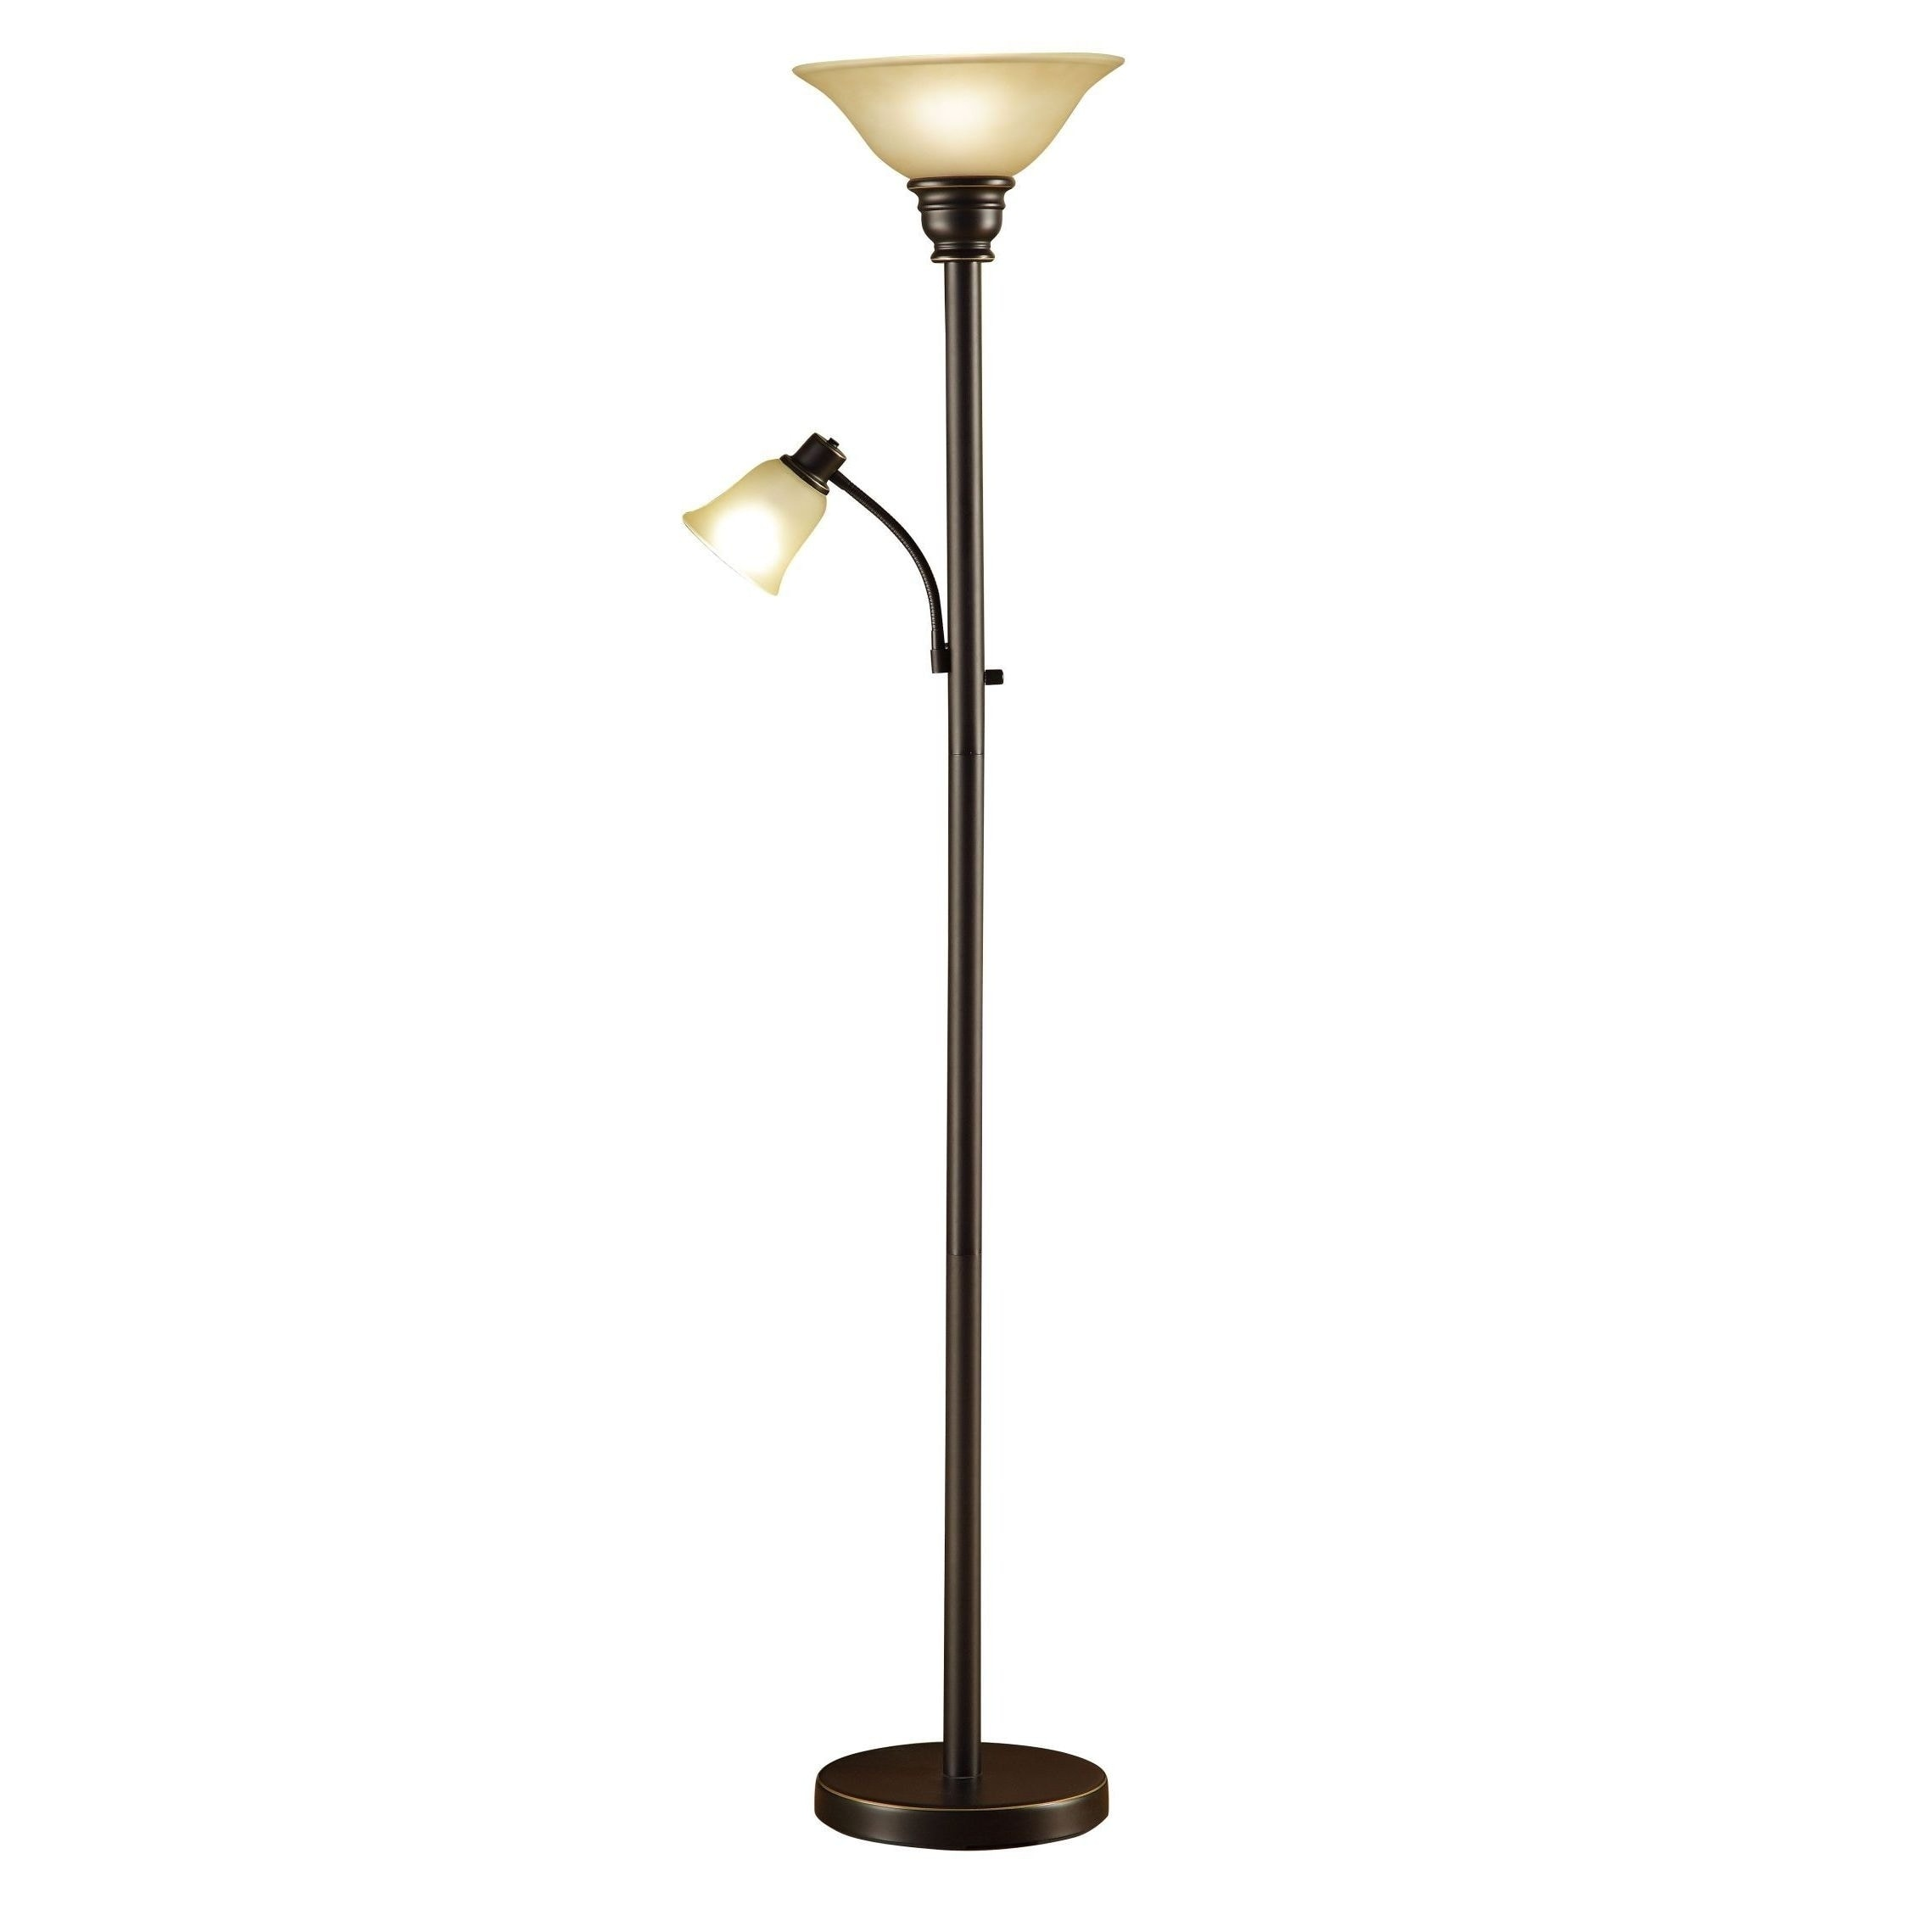 Catalina Lighting Catalina Kerrington 18223-002 71-Inch O...